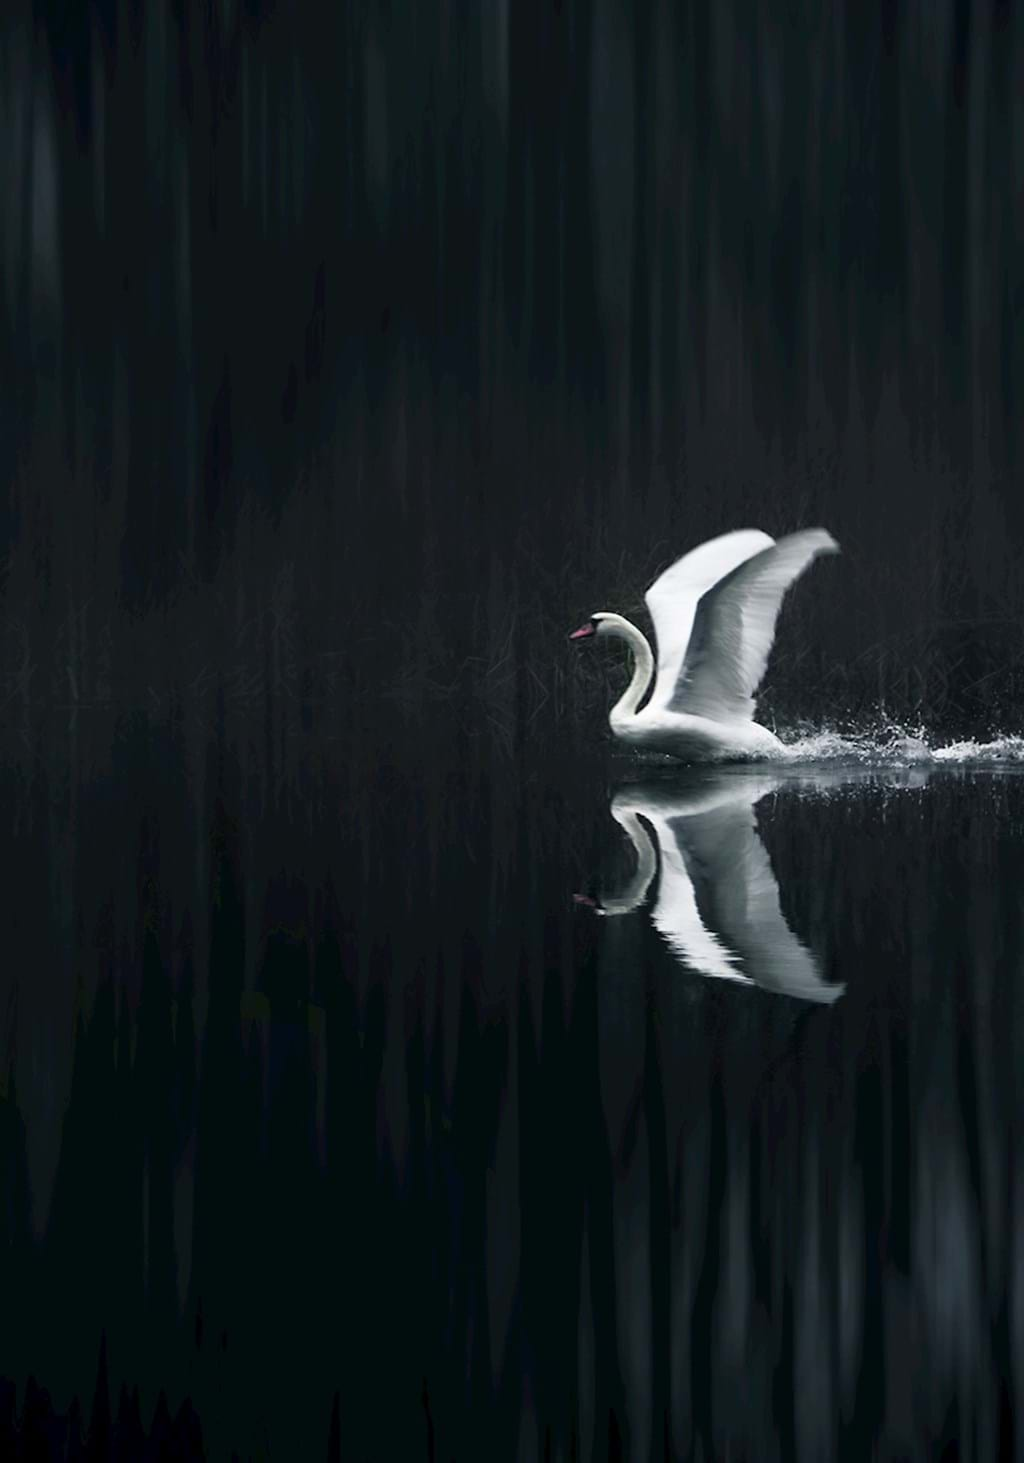 Poster: Take off - This piece is almost black and white, except for the orange beak af the swa...